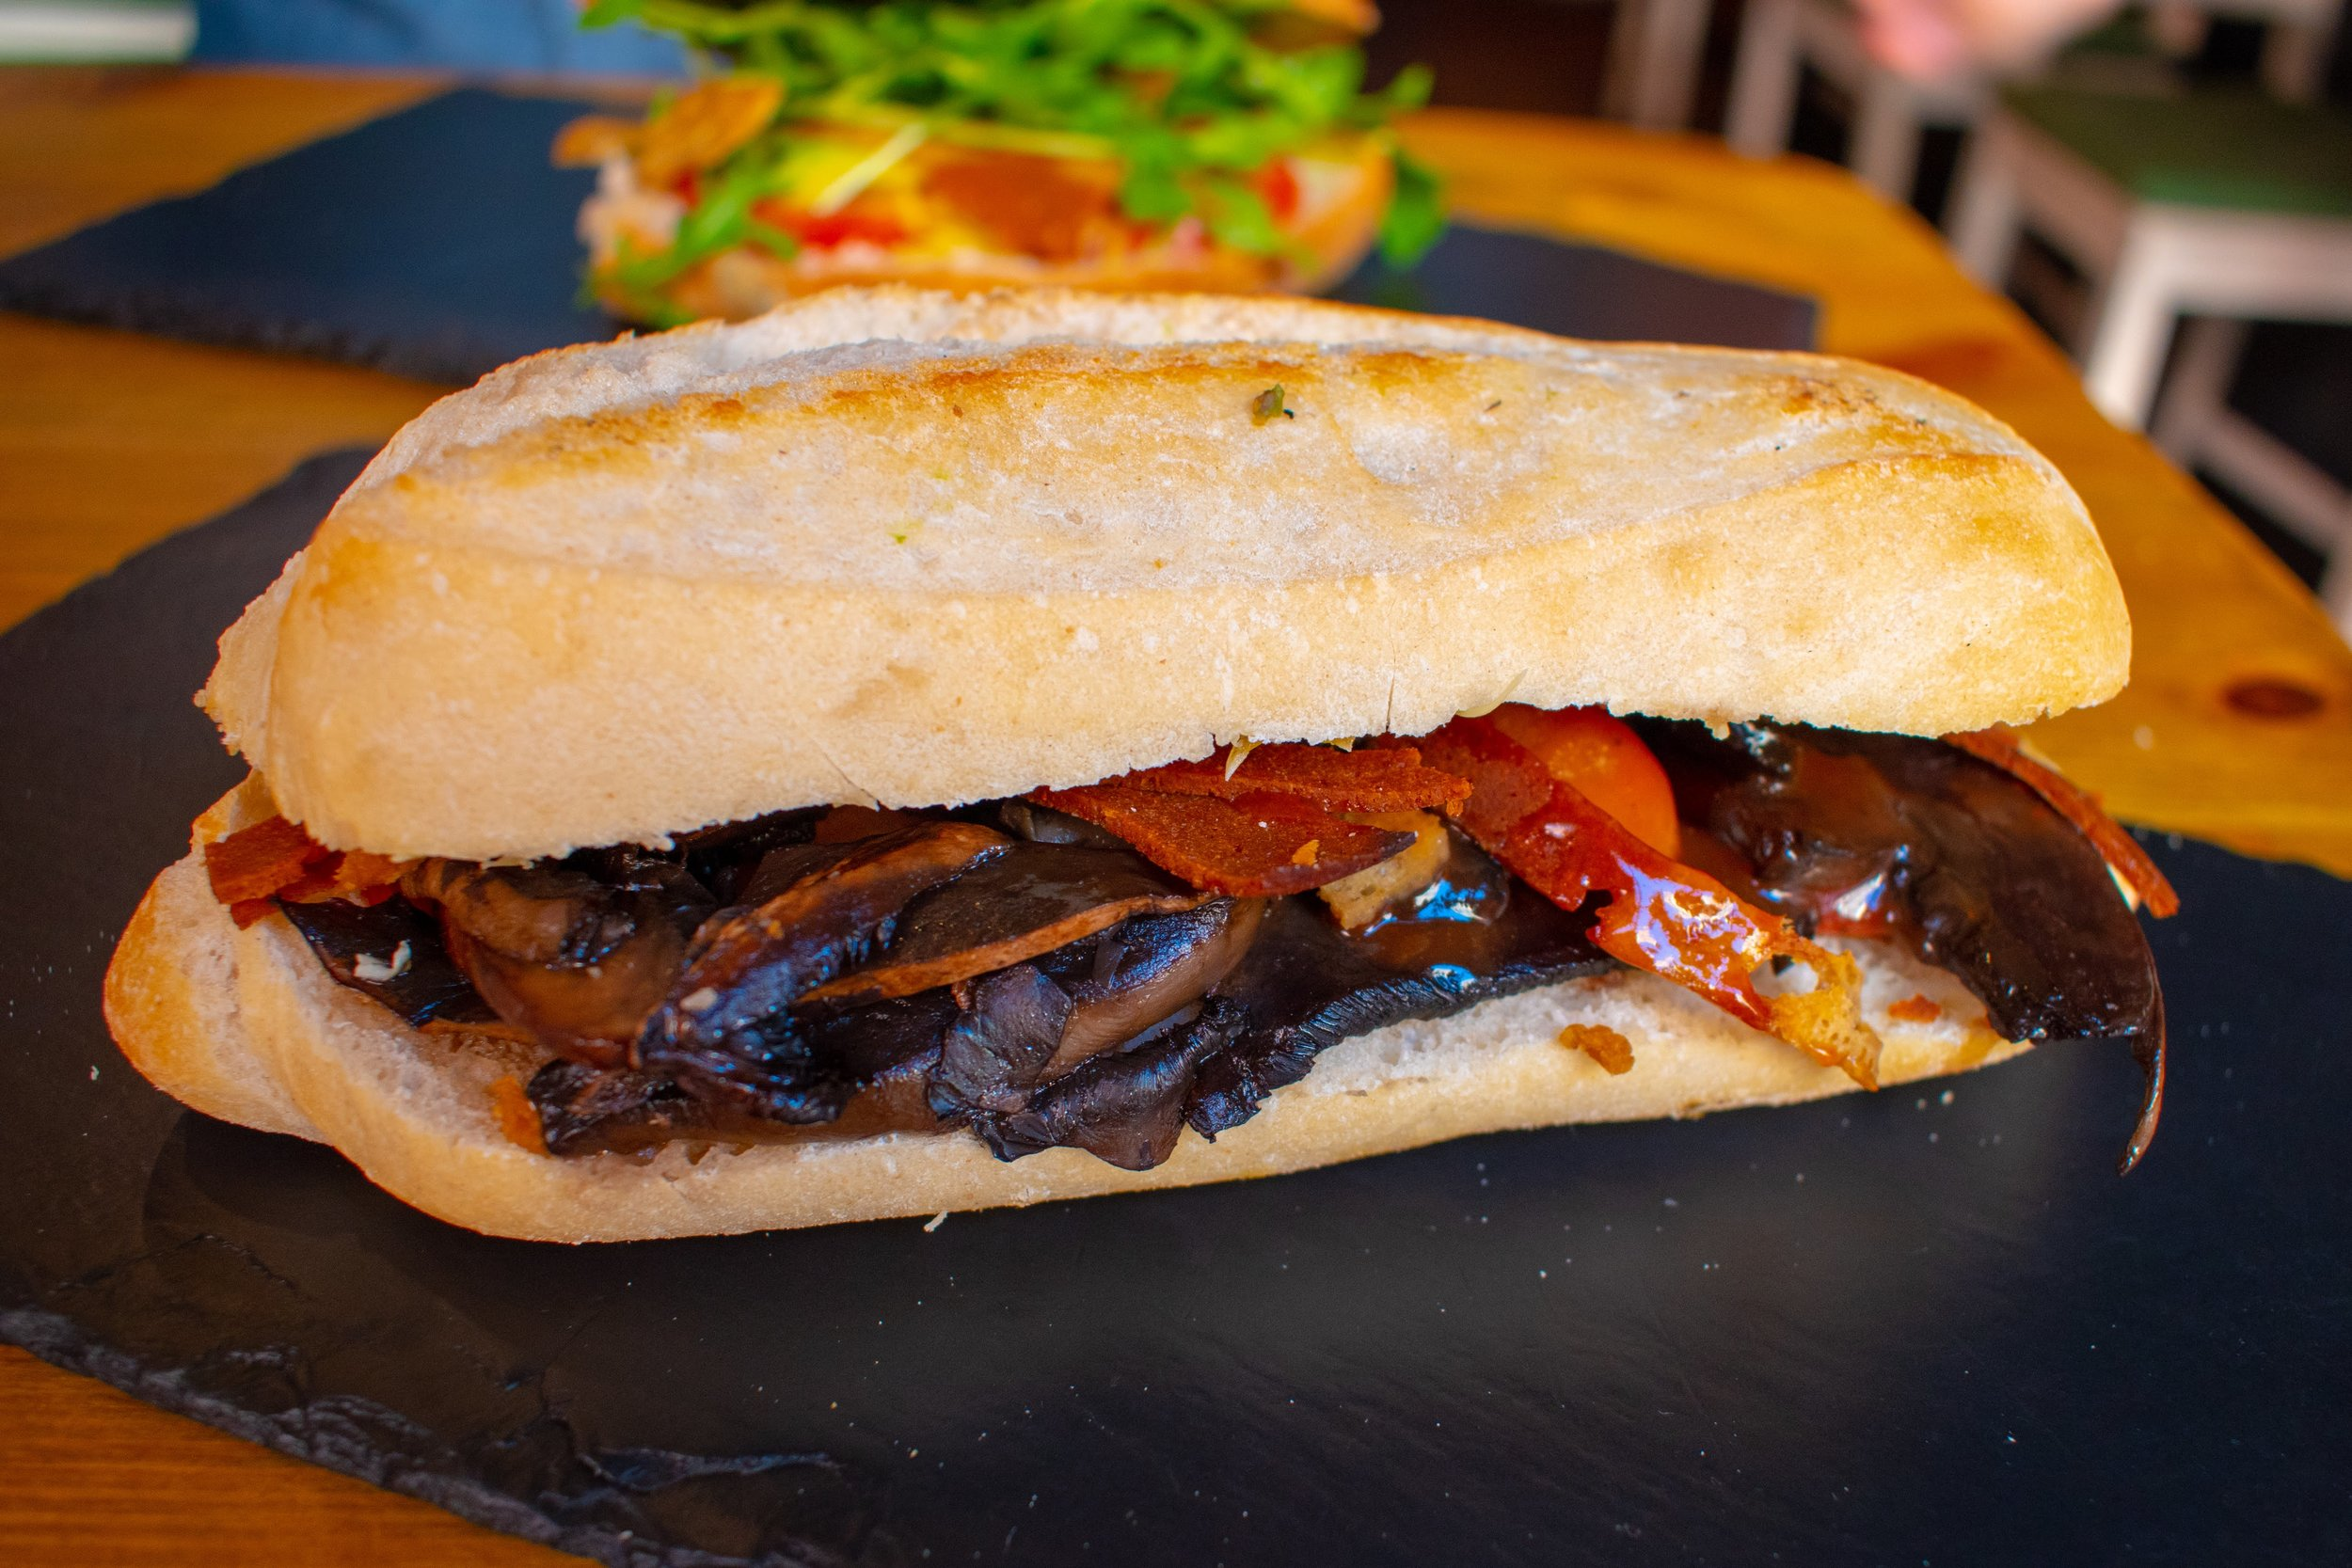 uprooted-traveler-dublin-cafe-apertivo-vegan-breakfast-sandwich-ireland.jpg